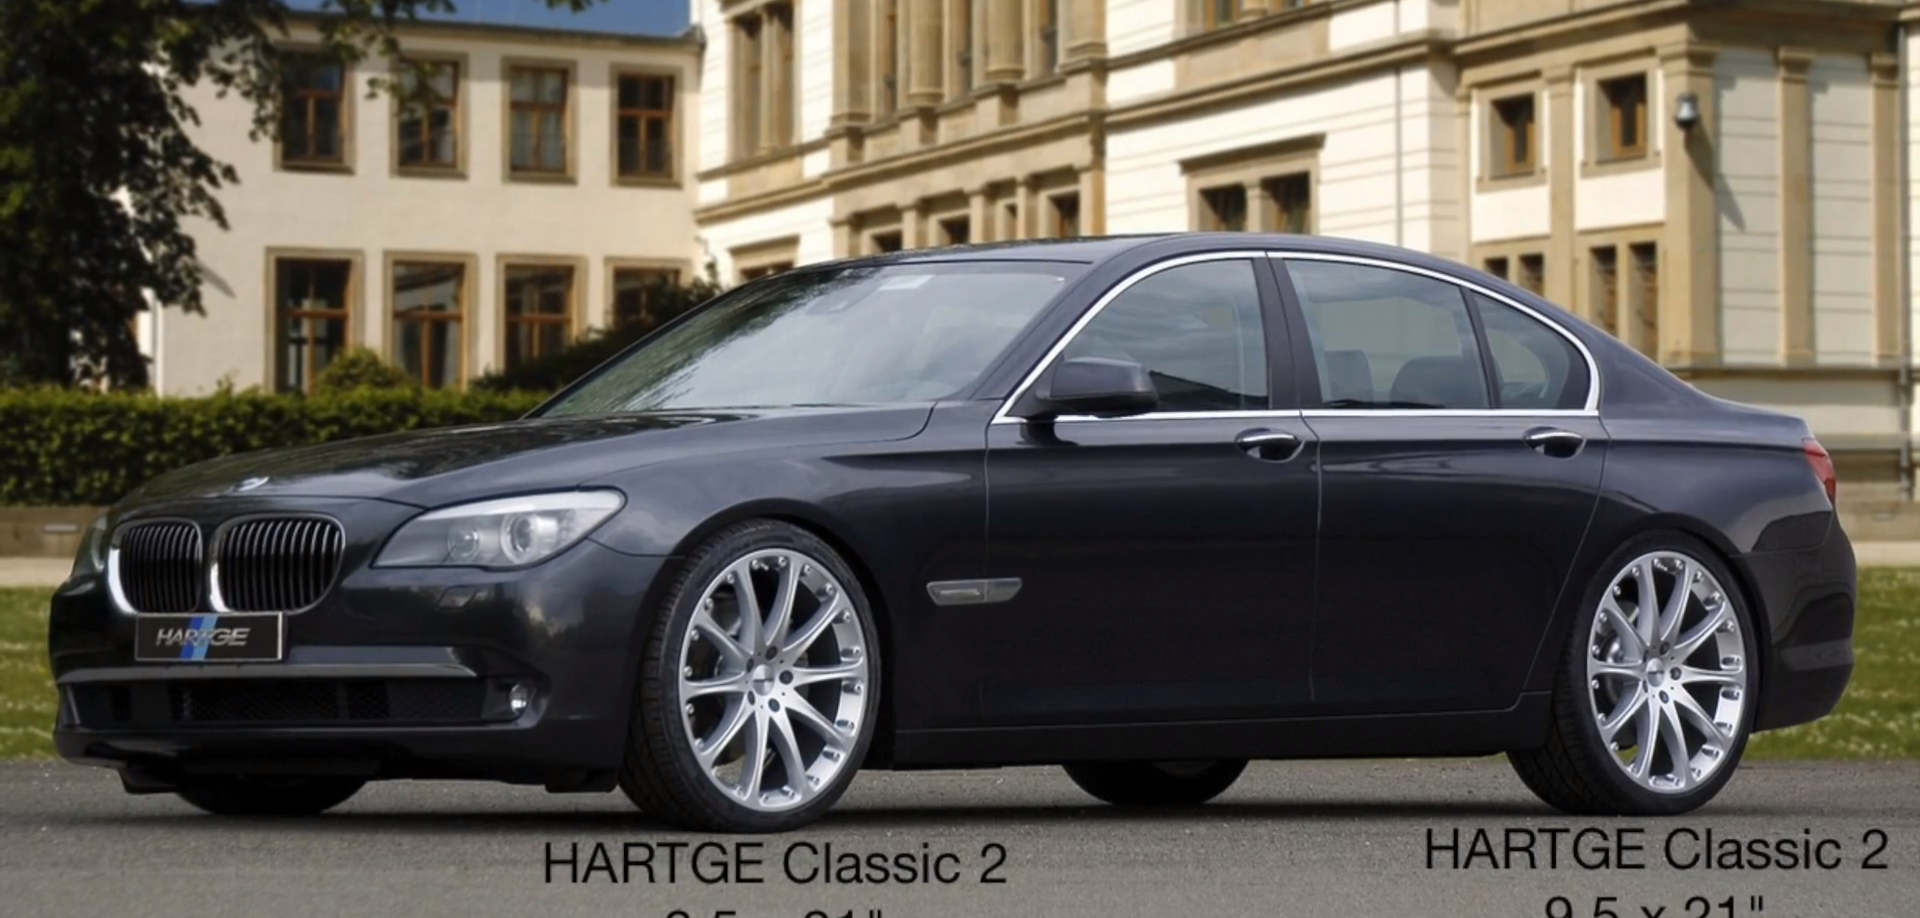 hartge advertises upgrade kit for bmw 730d autoevolution. Black Bedroom Furniture Sets. Home Design Ideas